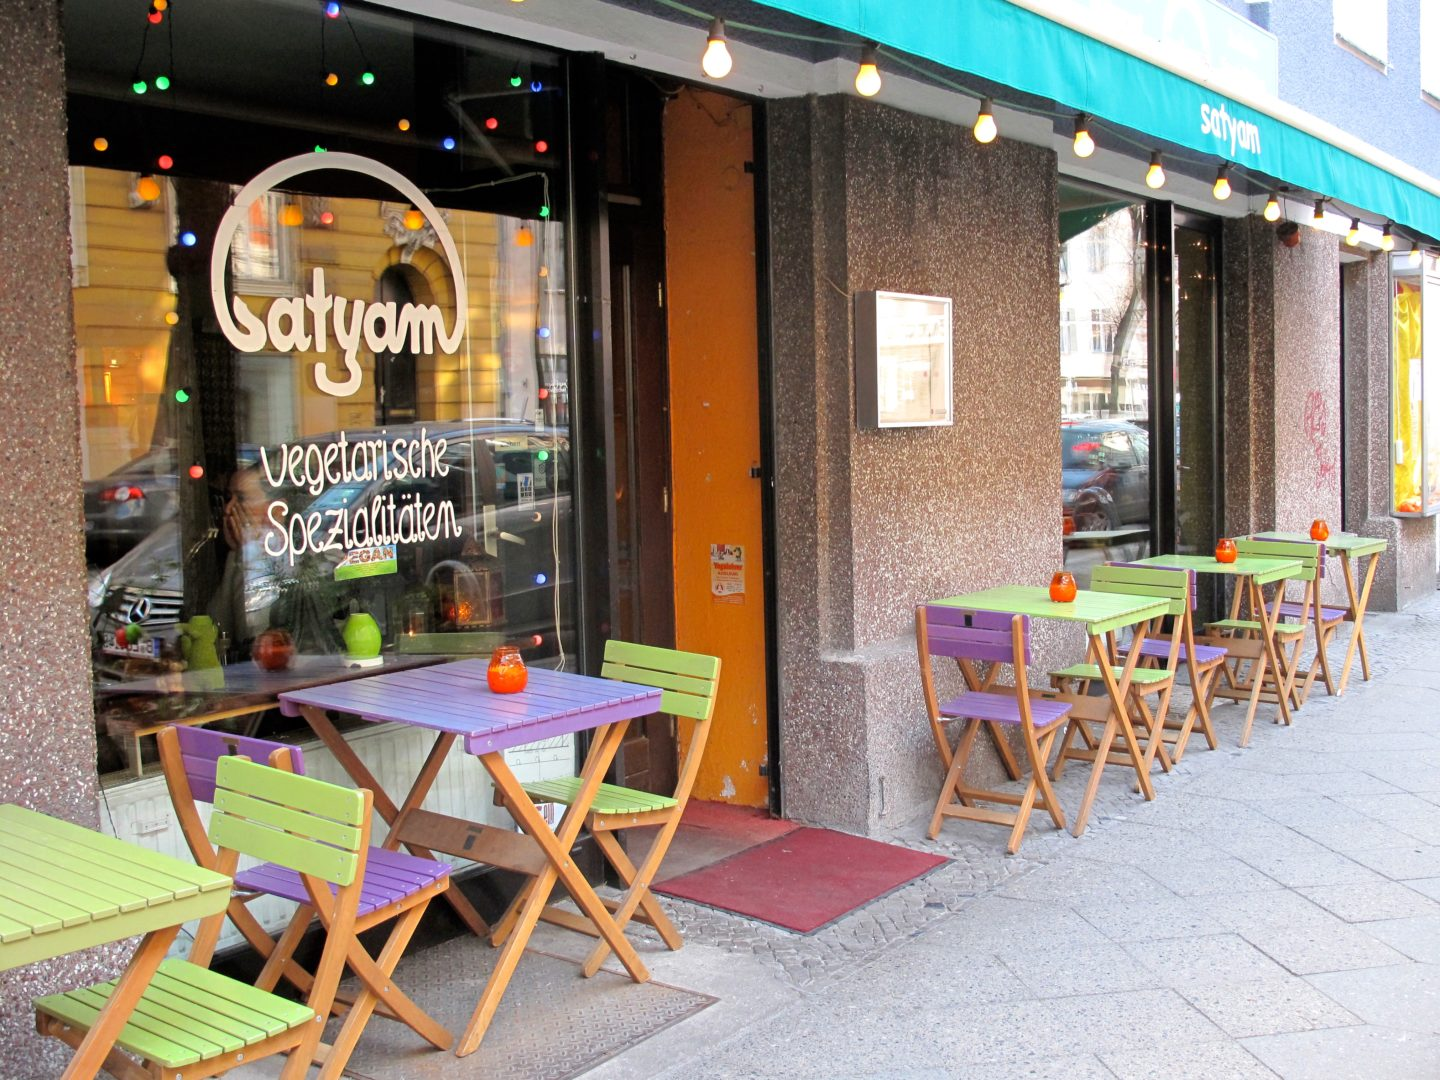 Indische Restaurants in Berlin: Satyam